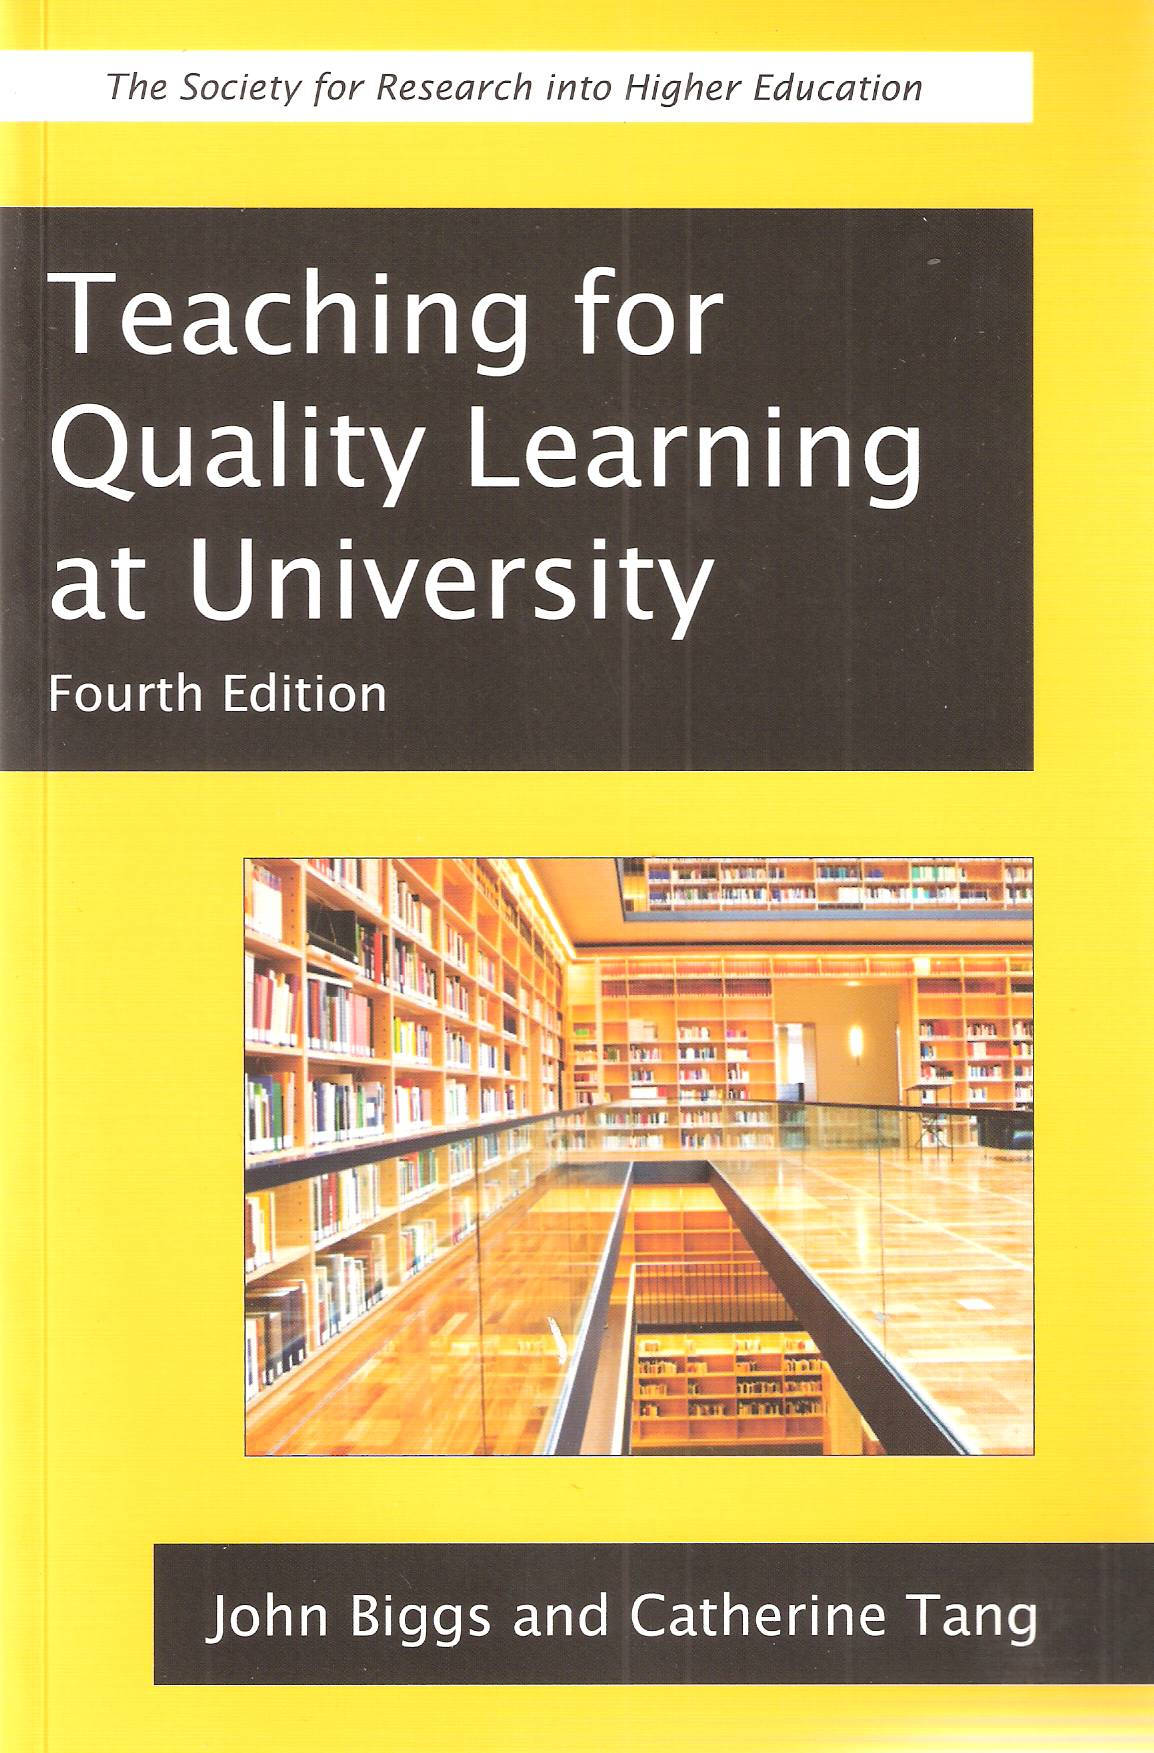 Biggs, John en Catherine Tang. Teaching for Quality Learning at University. 4e editie. McGrawHill